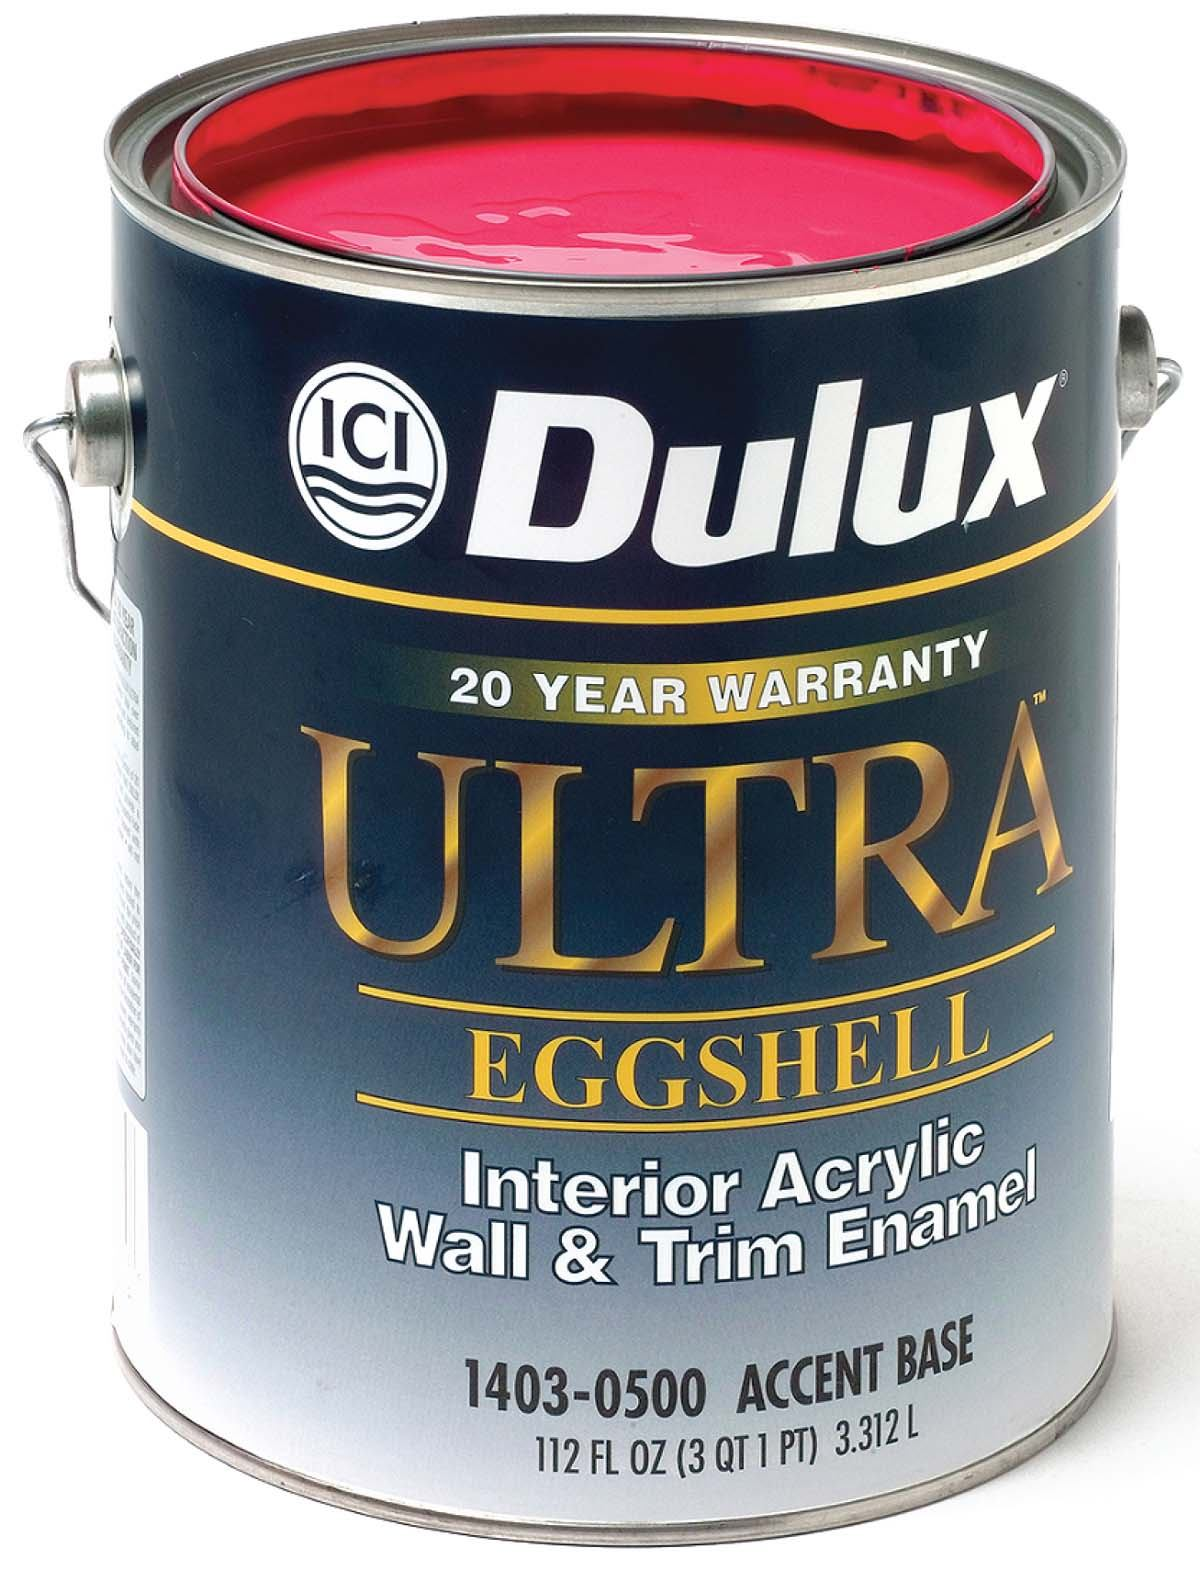 Low Voc Paints Architect Magazine Low Voc Paints